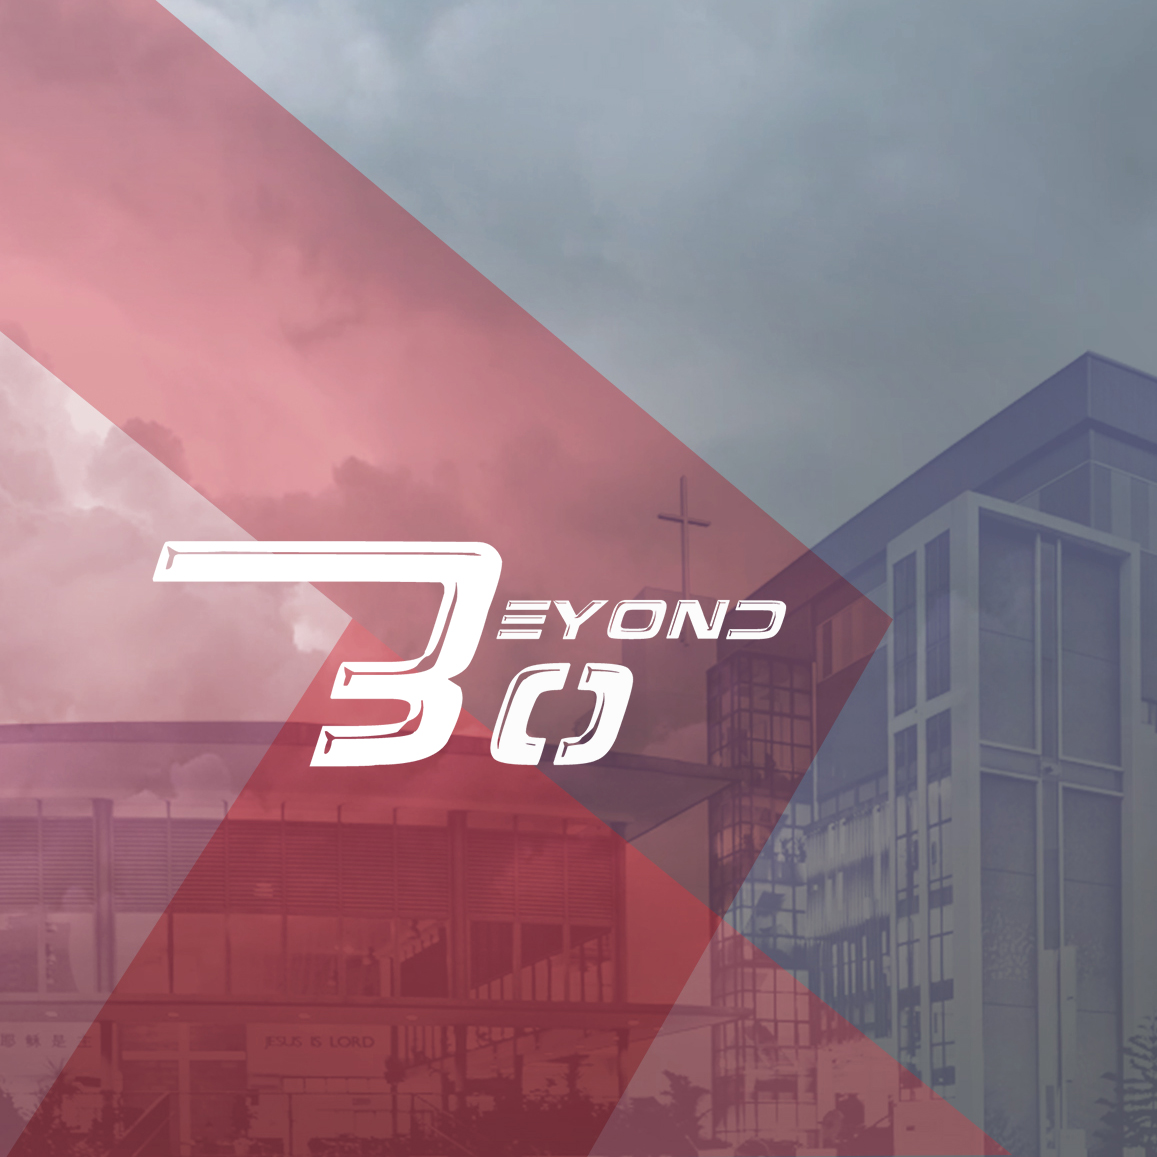 Beyond 30 CD artwork.jpg.jpg